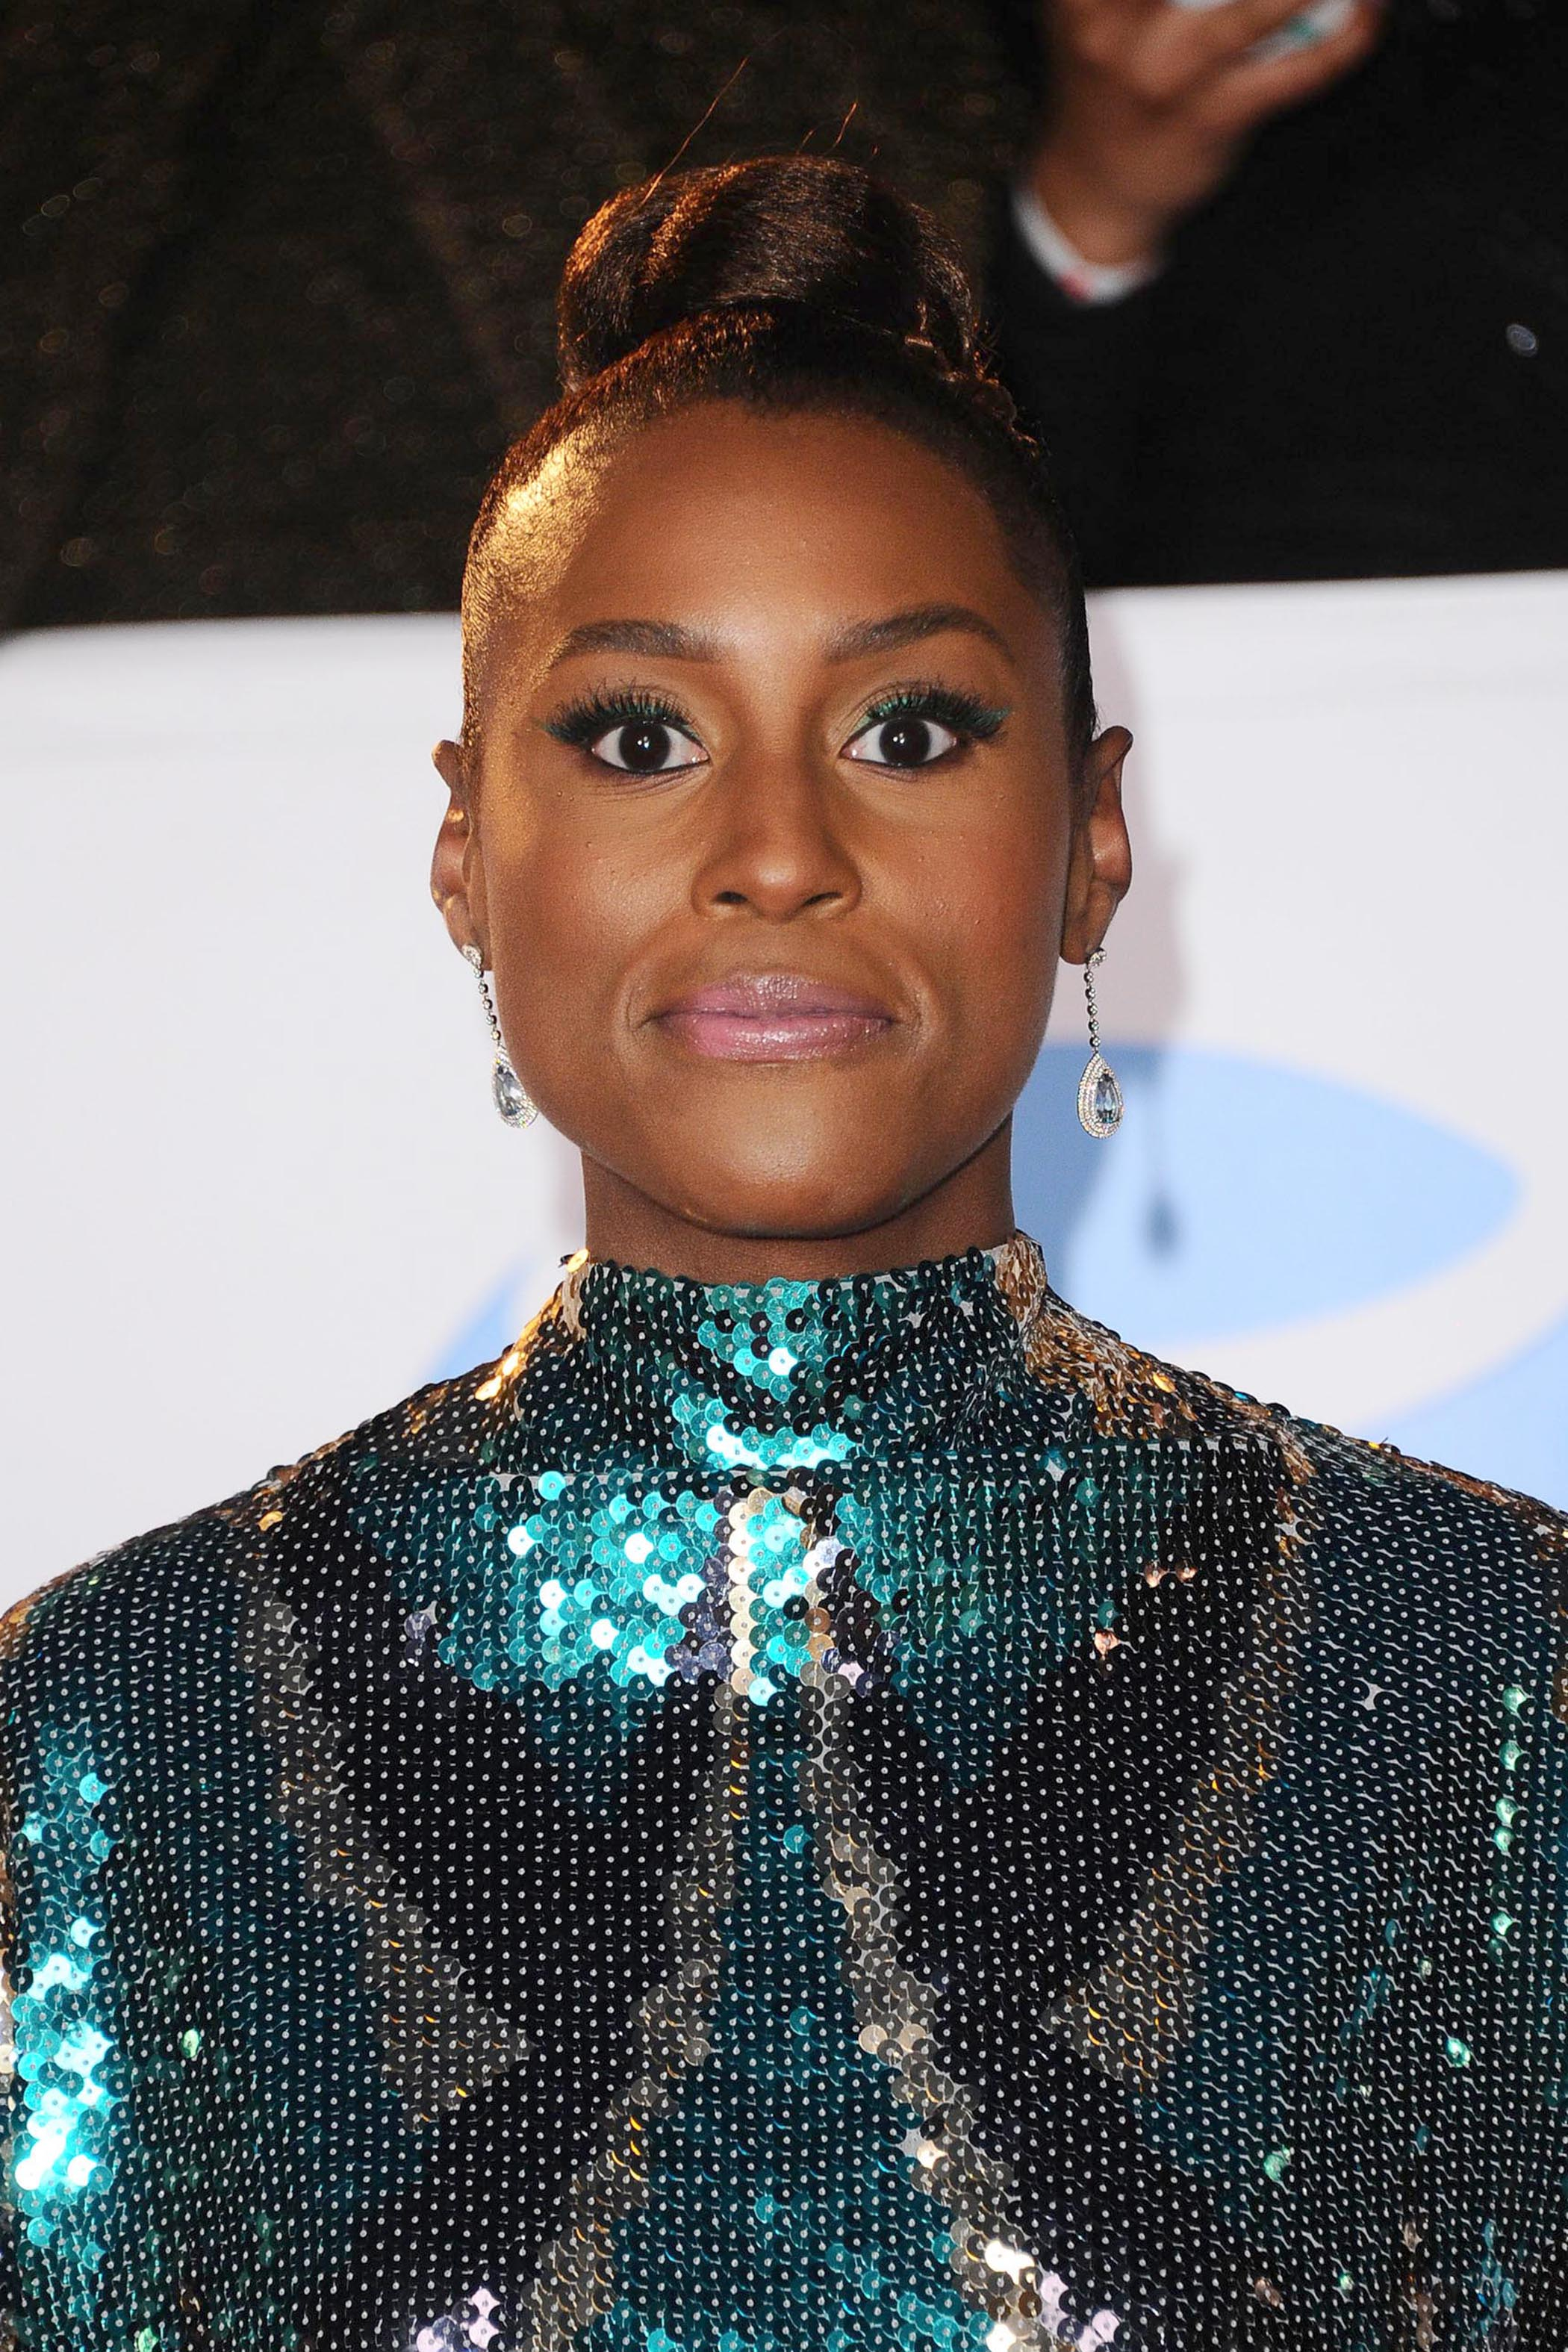 Actress Issa Rae at the NAACP Image Awards with a high bun hairstyle